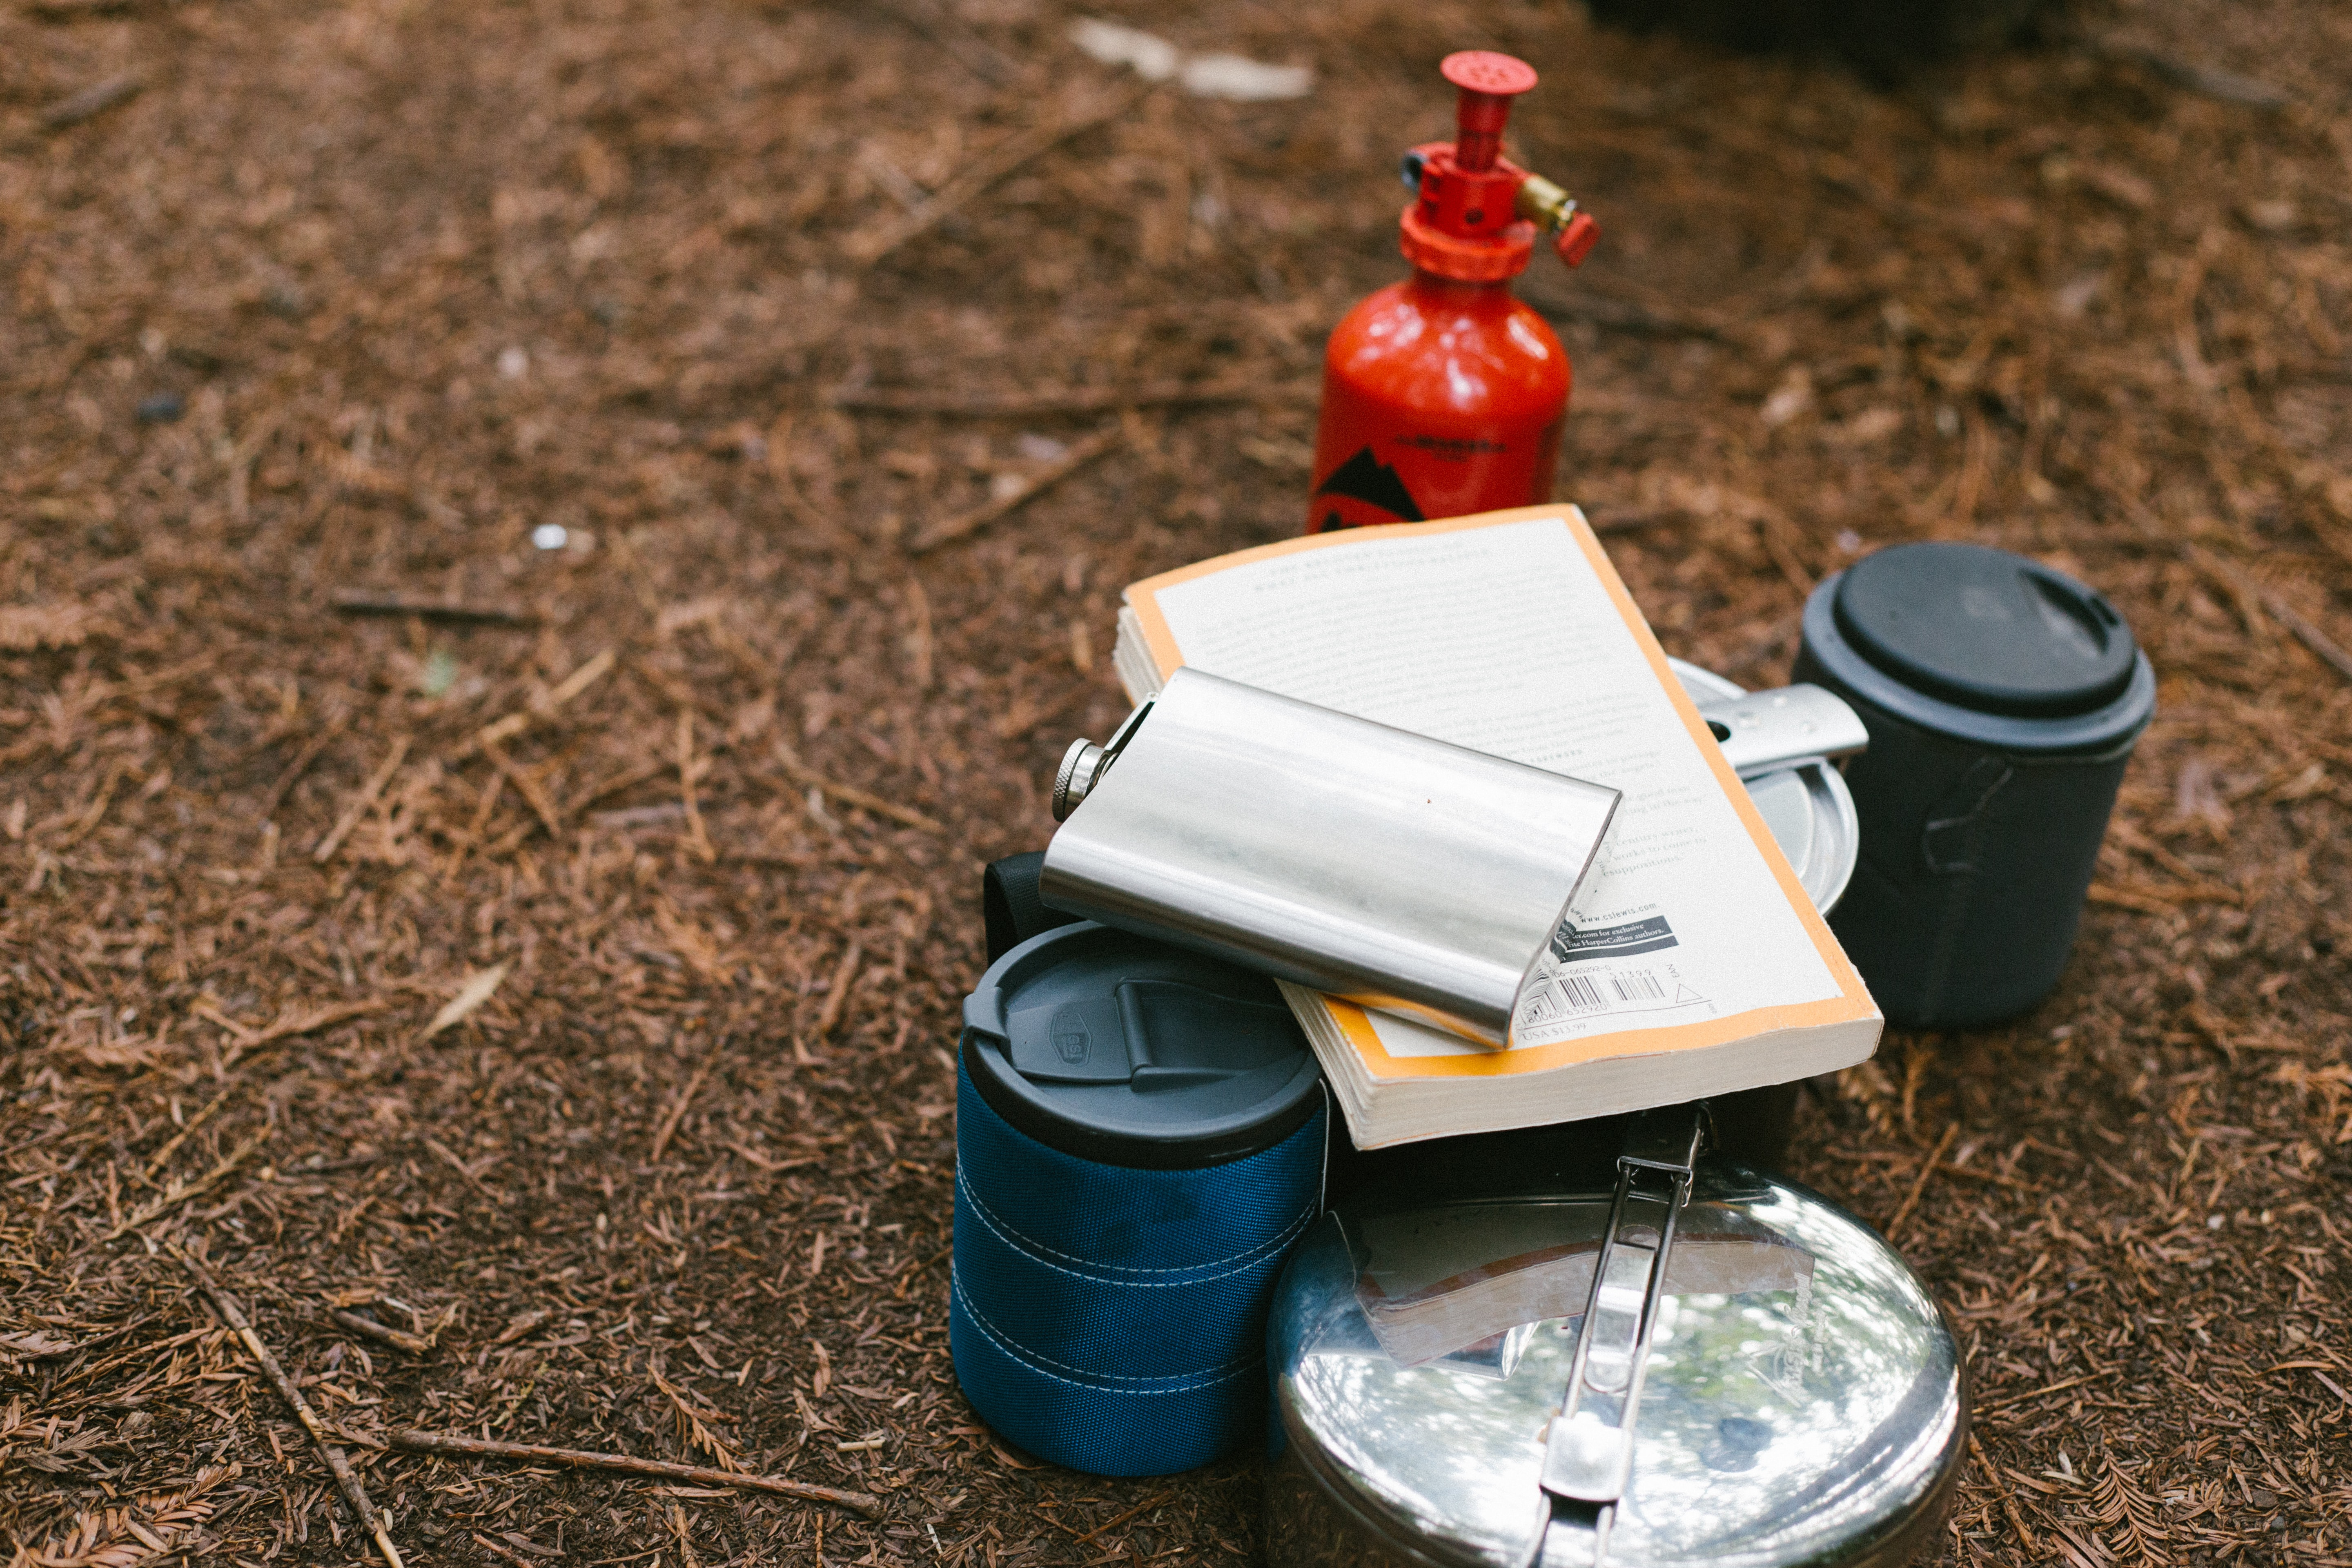 flat lay photography of hip flask, book, tiffin carrier and container